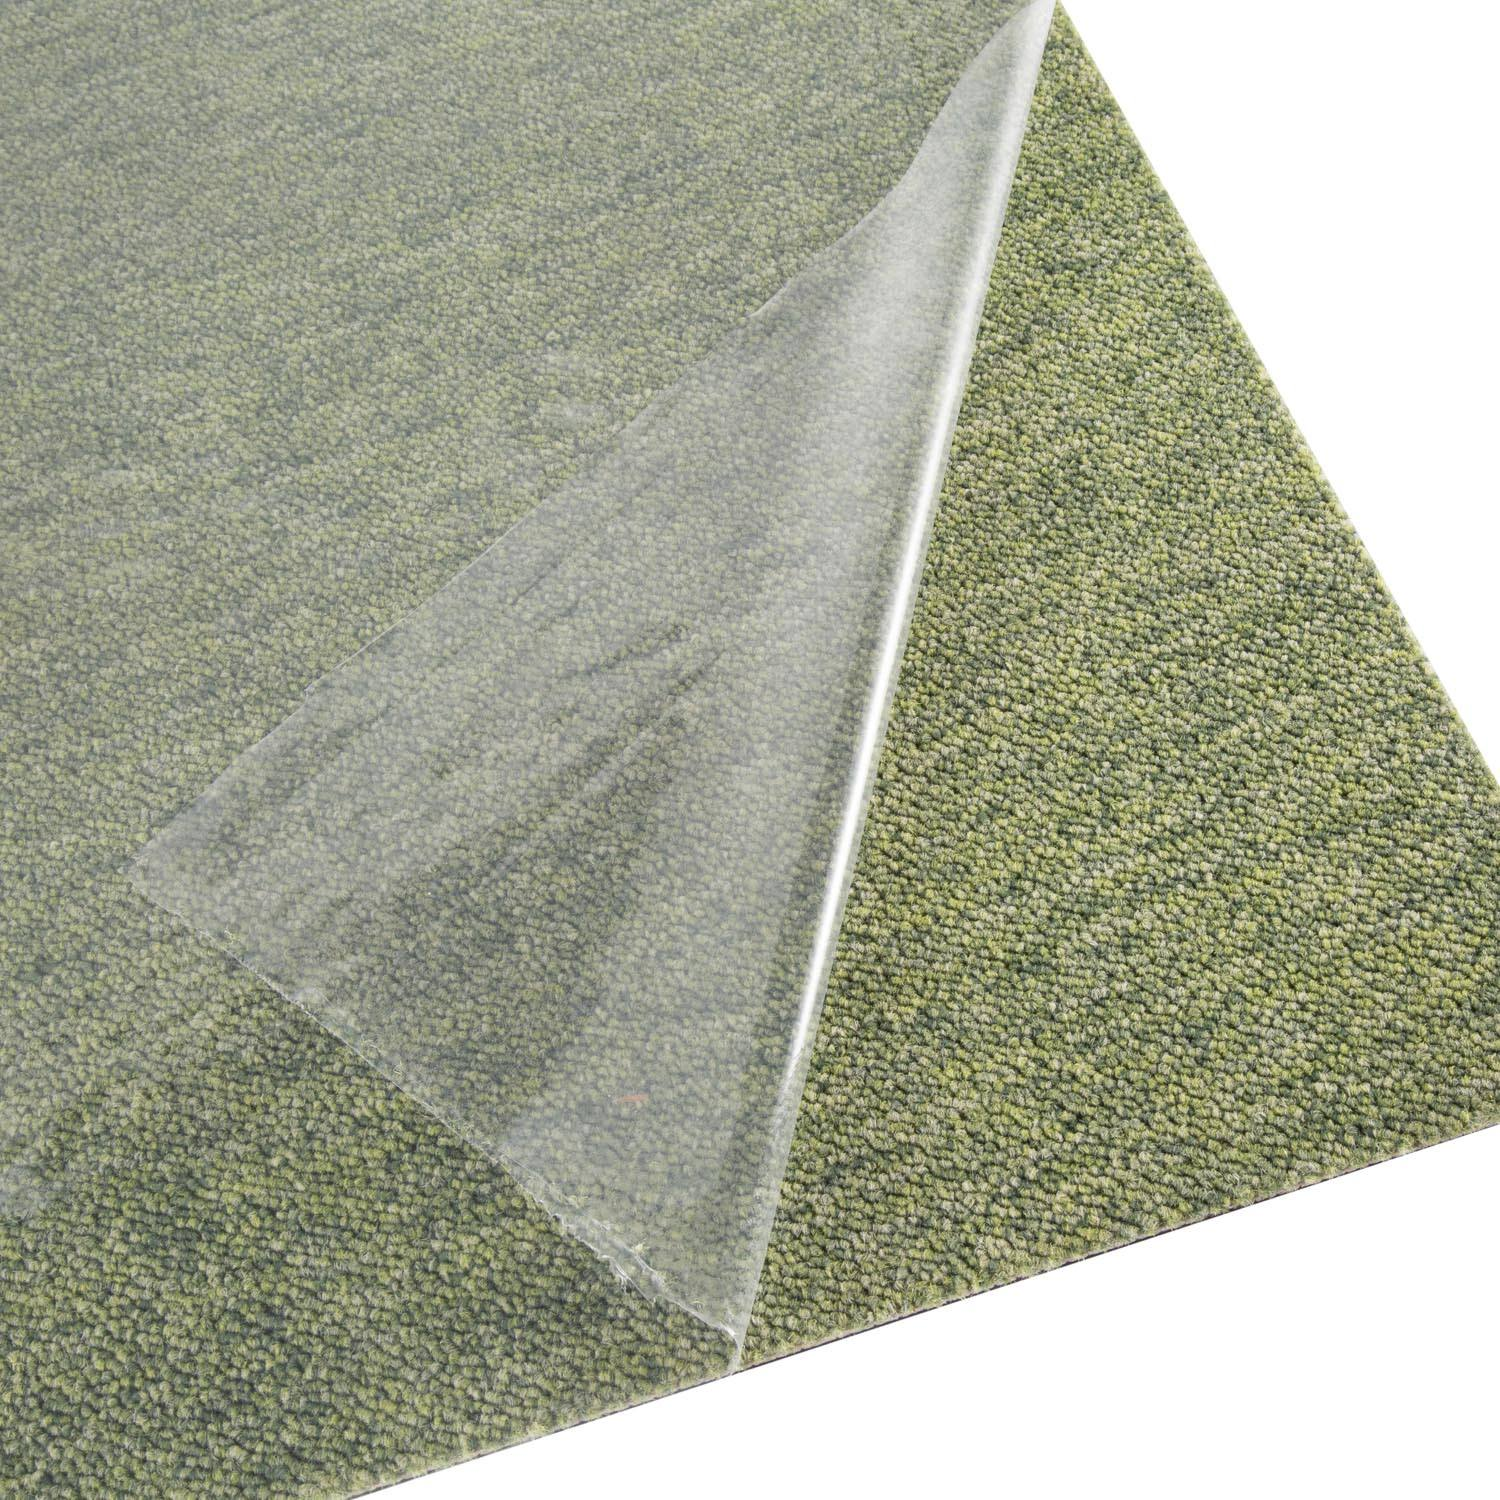 PE Adhesive Protection Film Anti -scratch Carpet Protector Film SH50TR